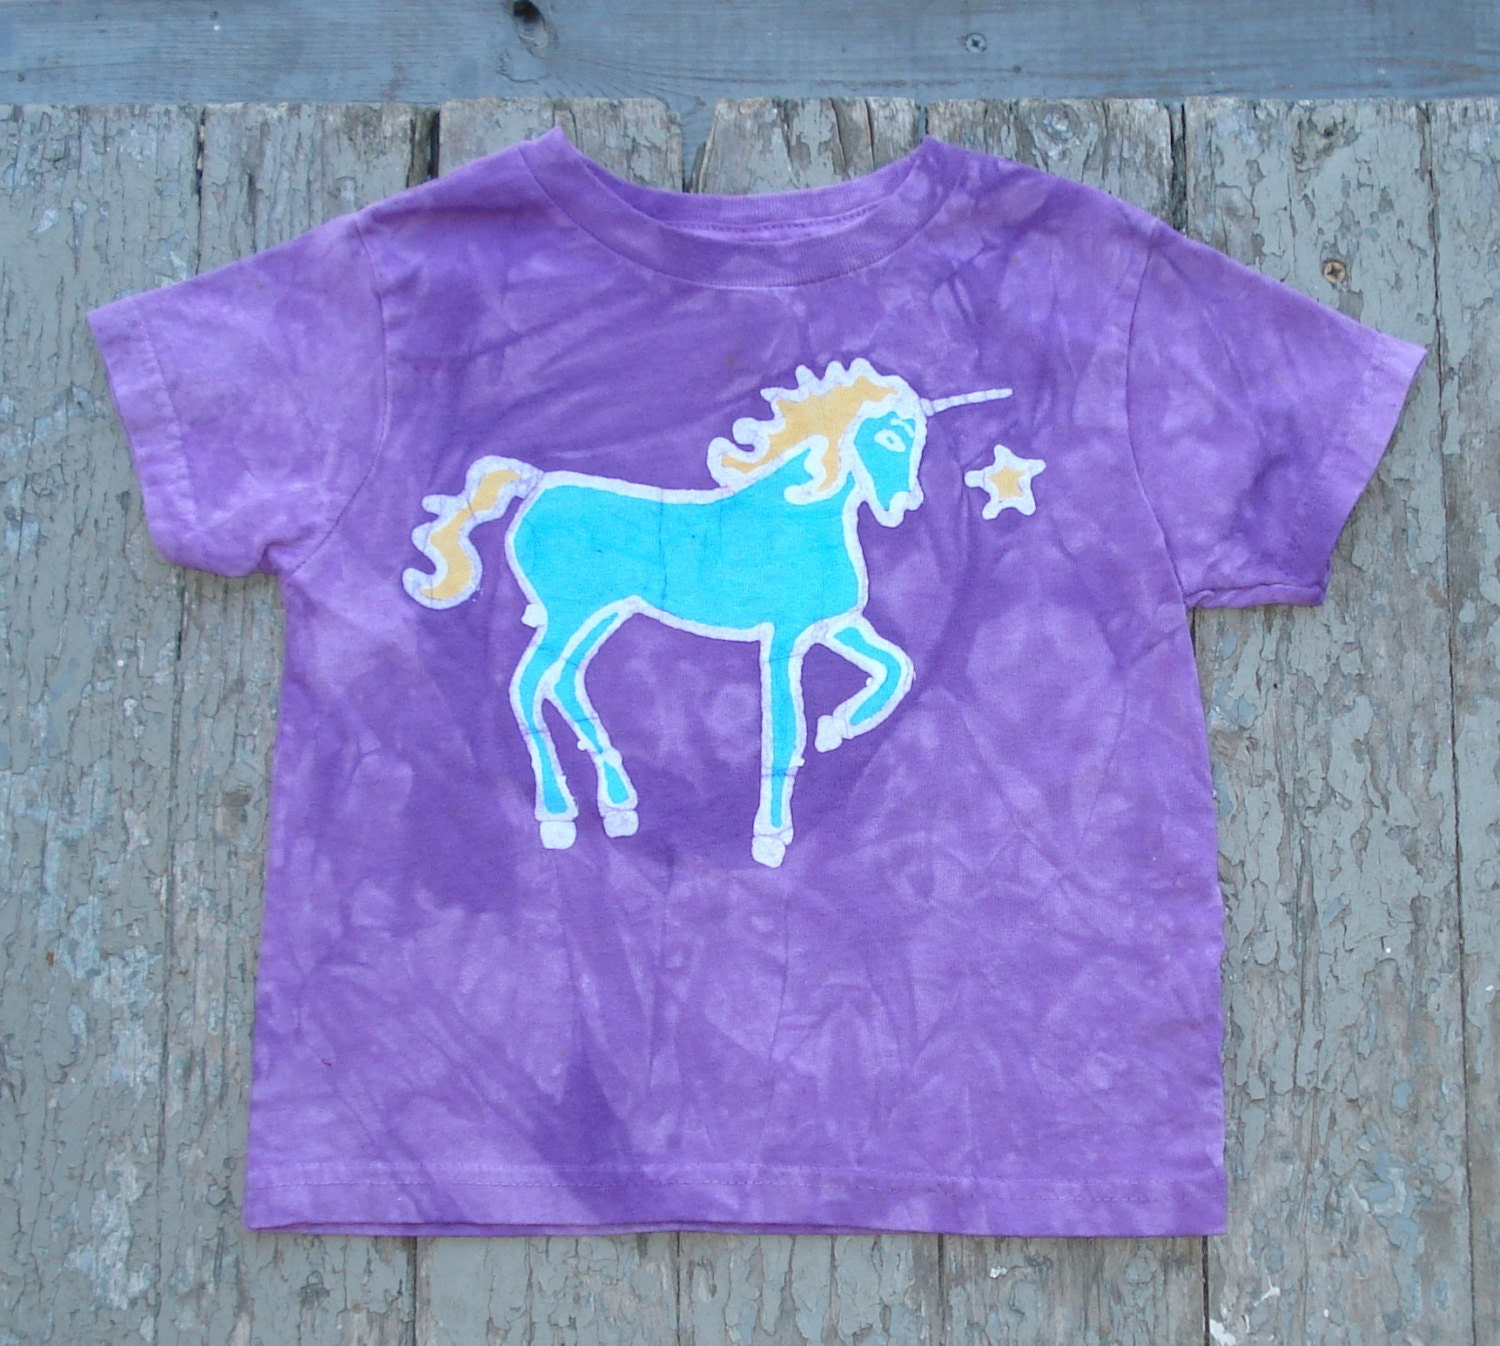 unicorn tee shirt magical batik tee shirt custom made. Black Bedroom Furniture Sets. Home Design Ideas